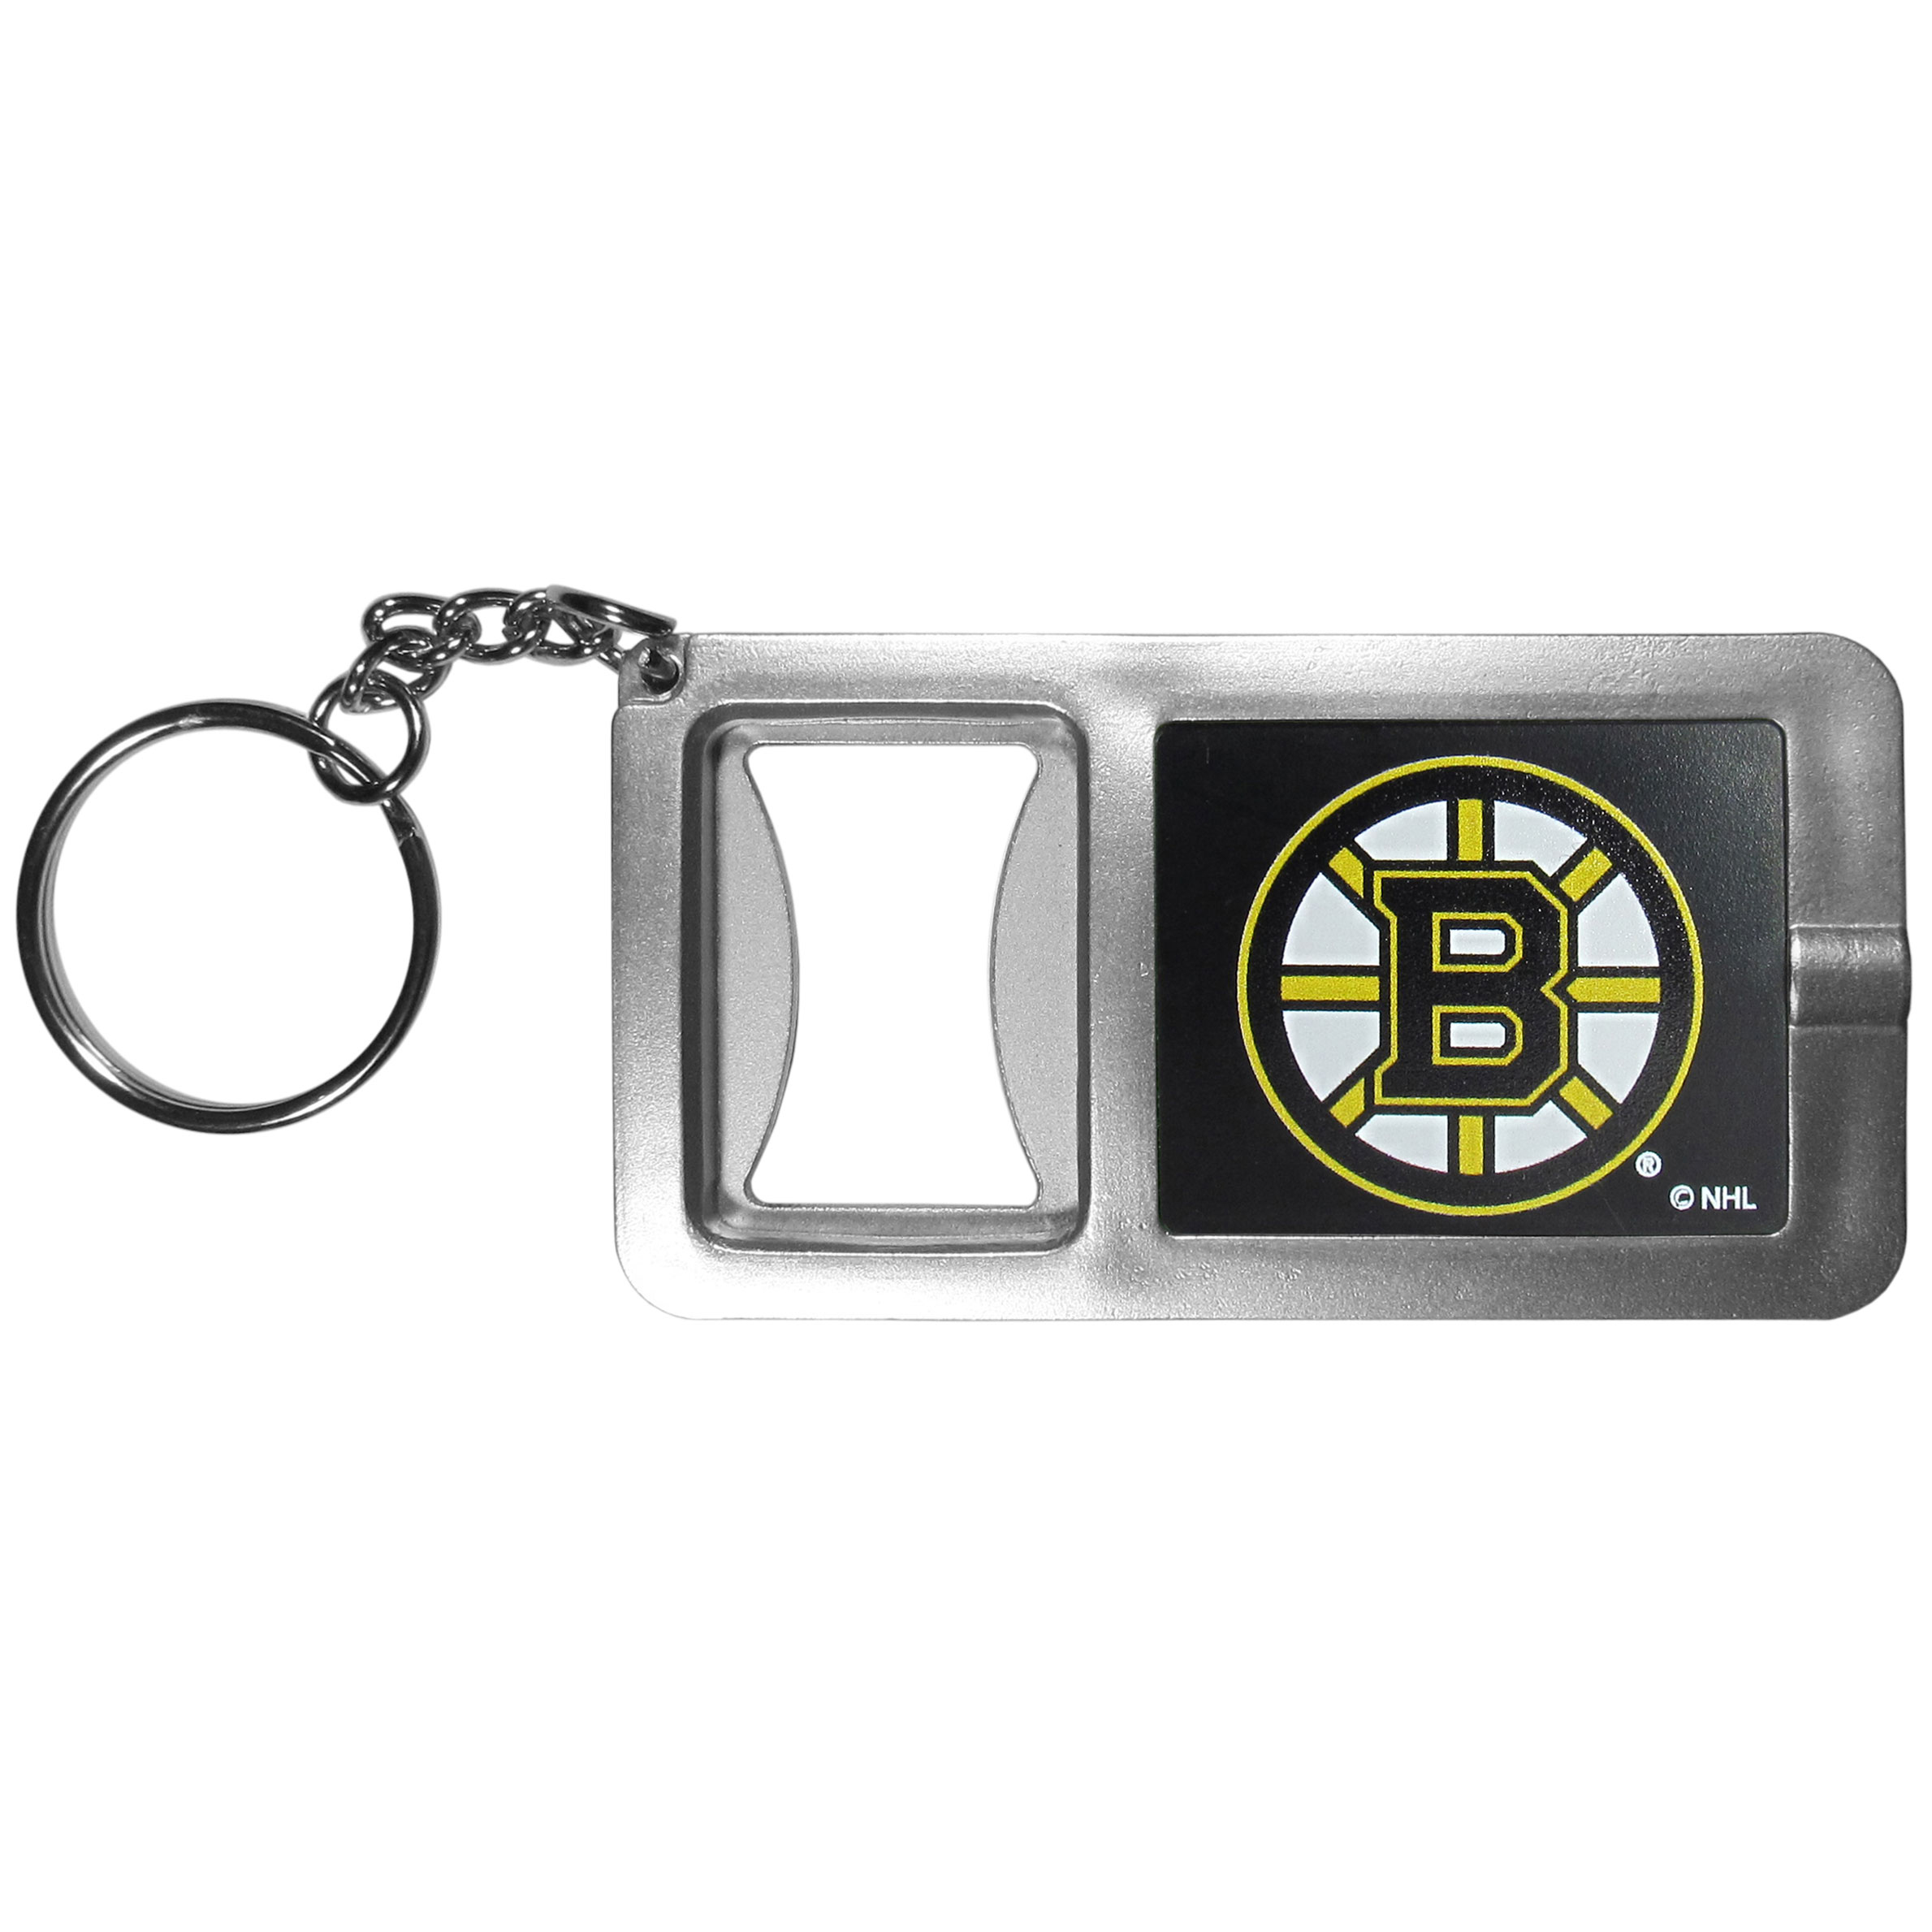 Boston Bruins Flashlight Key Chain with Bottle Opener - Never be without light with our Boston Bruins flashlight keychain that features a handy bottle opener feature. This versatile key chain is perfect for camping and travel and is a great way to show off your team pride!